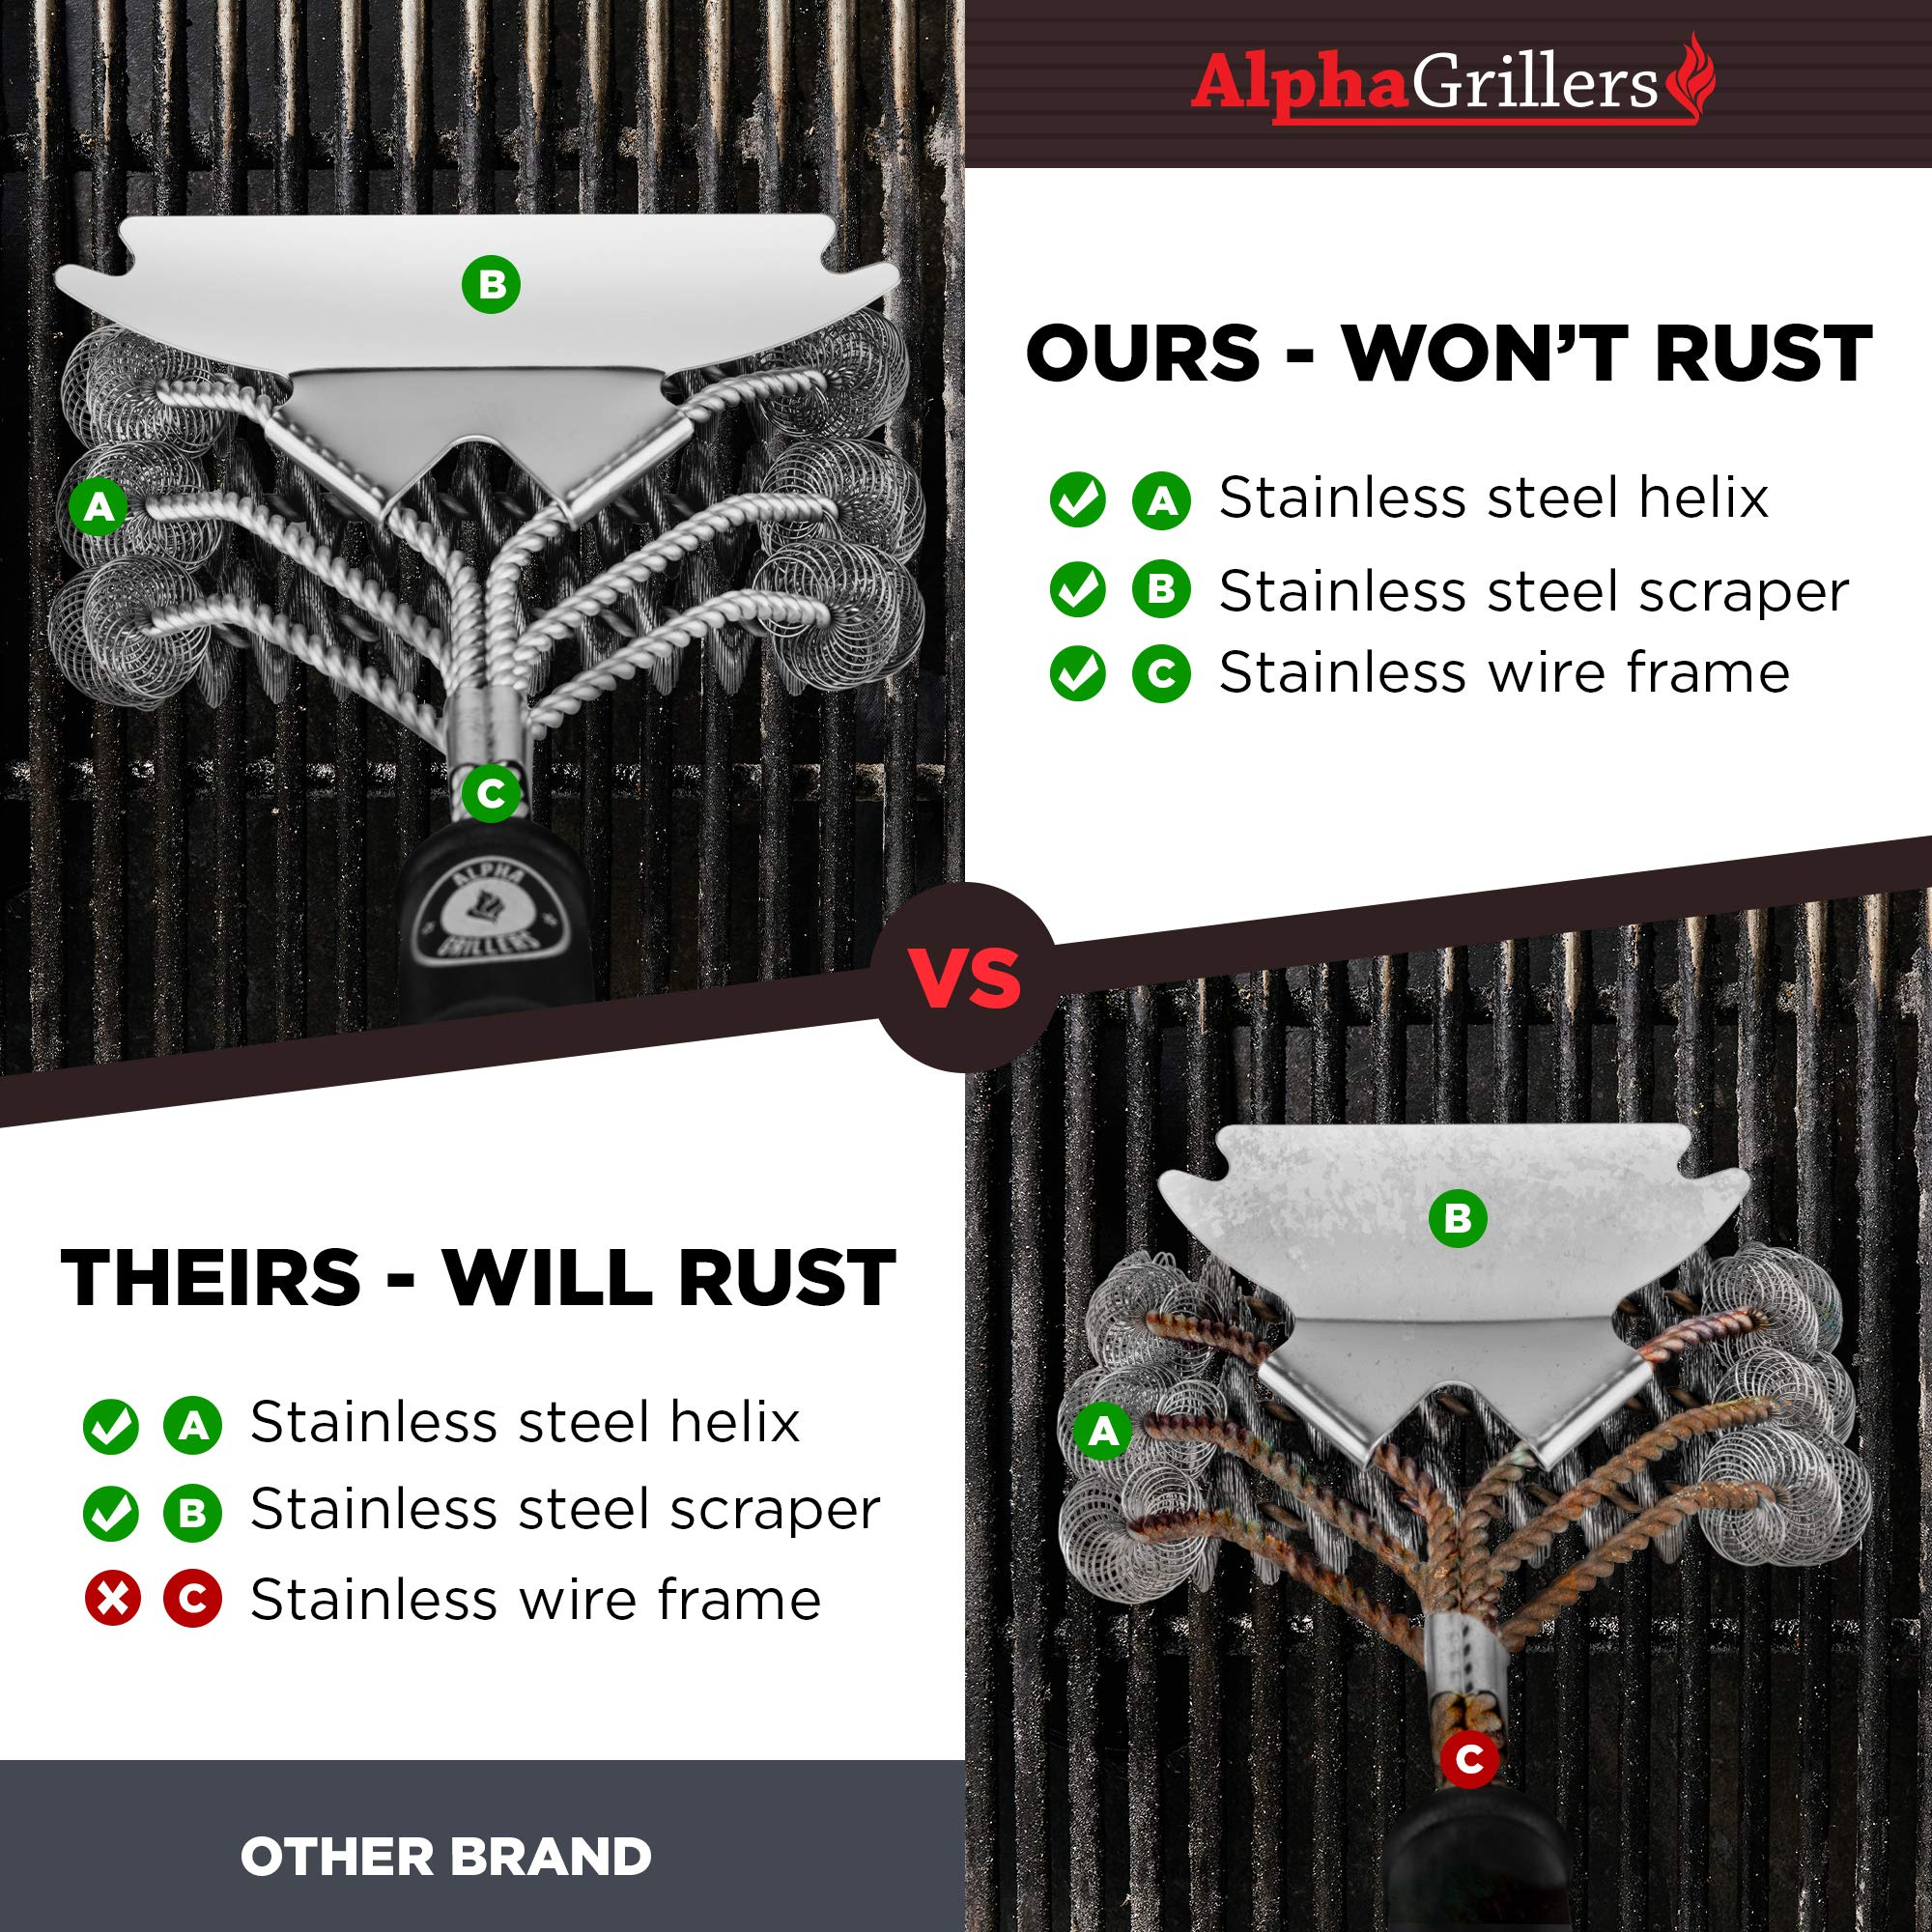 Alpha Grillers Grill Brush Bristle Free. Best Safe BBQ Cleaner with Extra Wide Scraper. Perfect 18 Inch Stainless Steel Tools for All Grill Types, Including Weber. Ideal Barbecue Accessories by Alpha Grillers (Image #4)